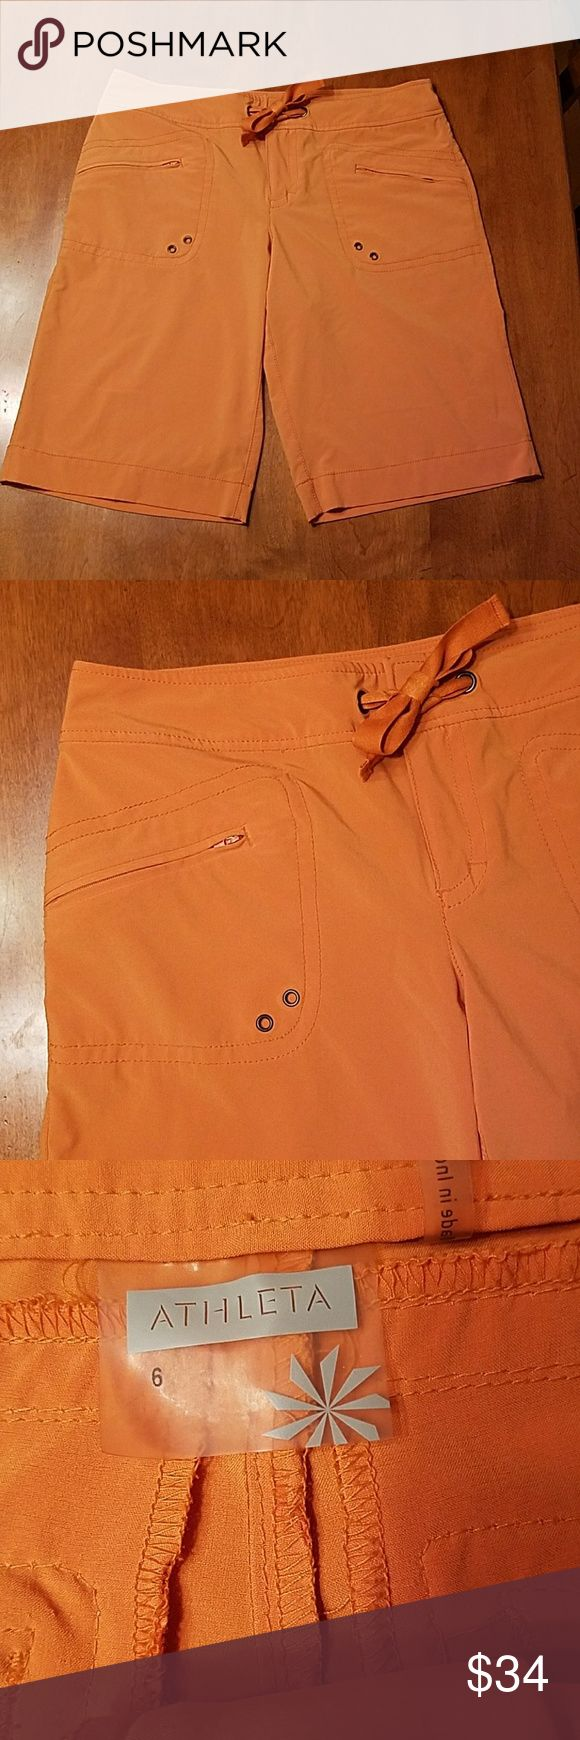 Athleta muted Orange shorts women's 6 These Soft Orange shorts are stretchy and stylish. Size 6. Two front flip Pockets to back zip pockets. 86% polyester 14% spandex. Inseam measures 11 and 3/4 inches long adjustable drawstring at waist. Athleta Shorts